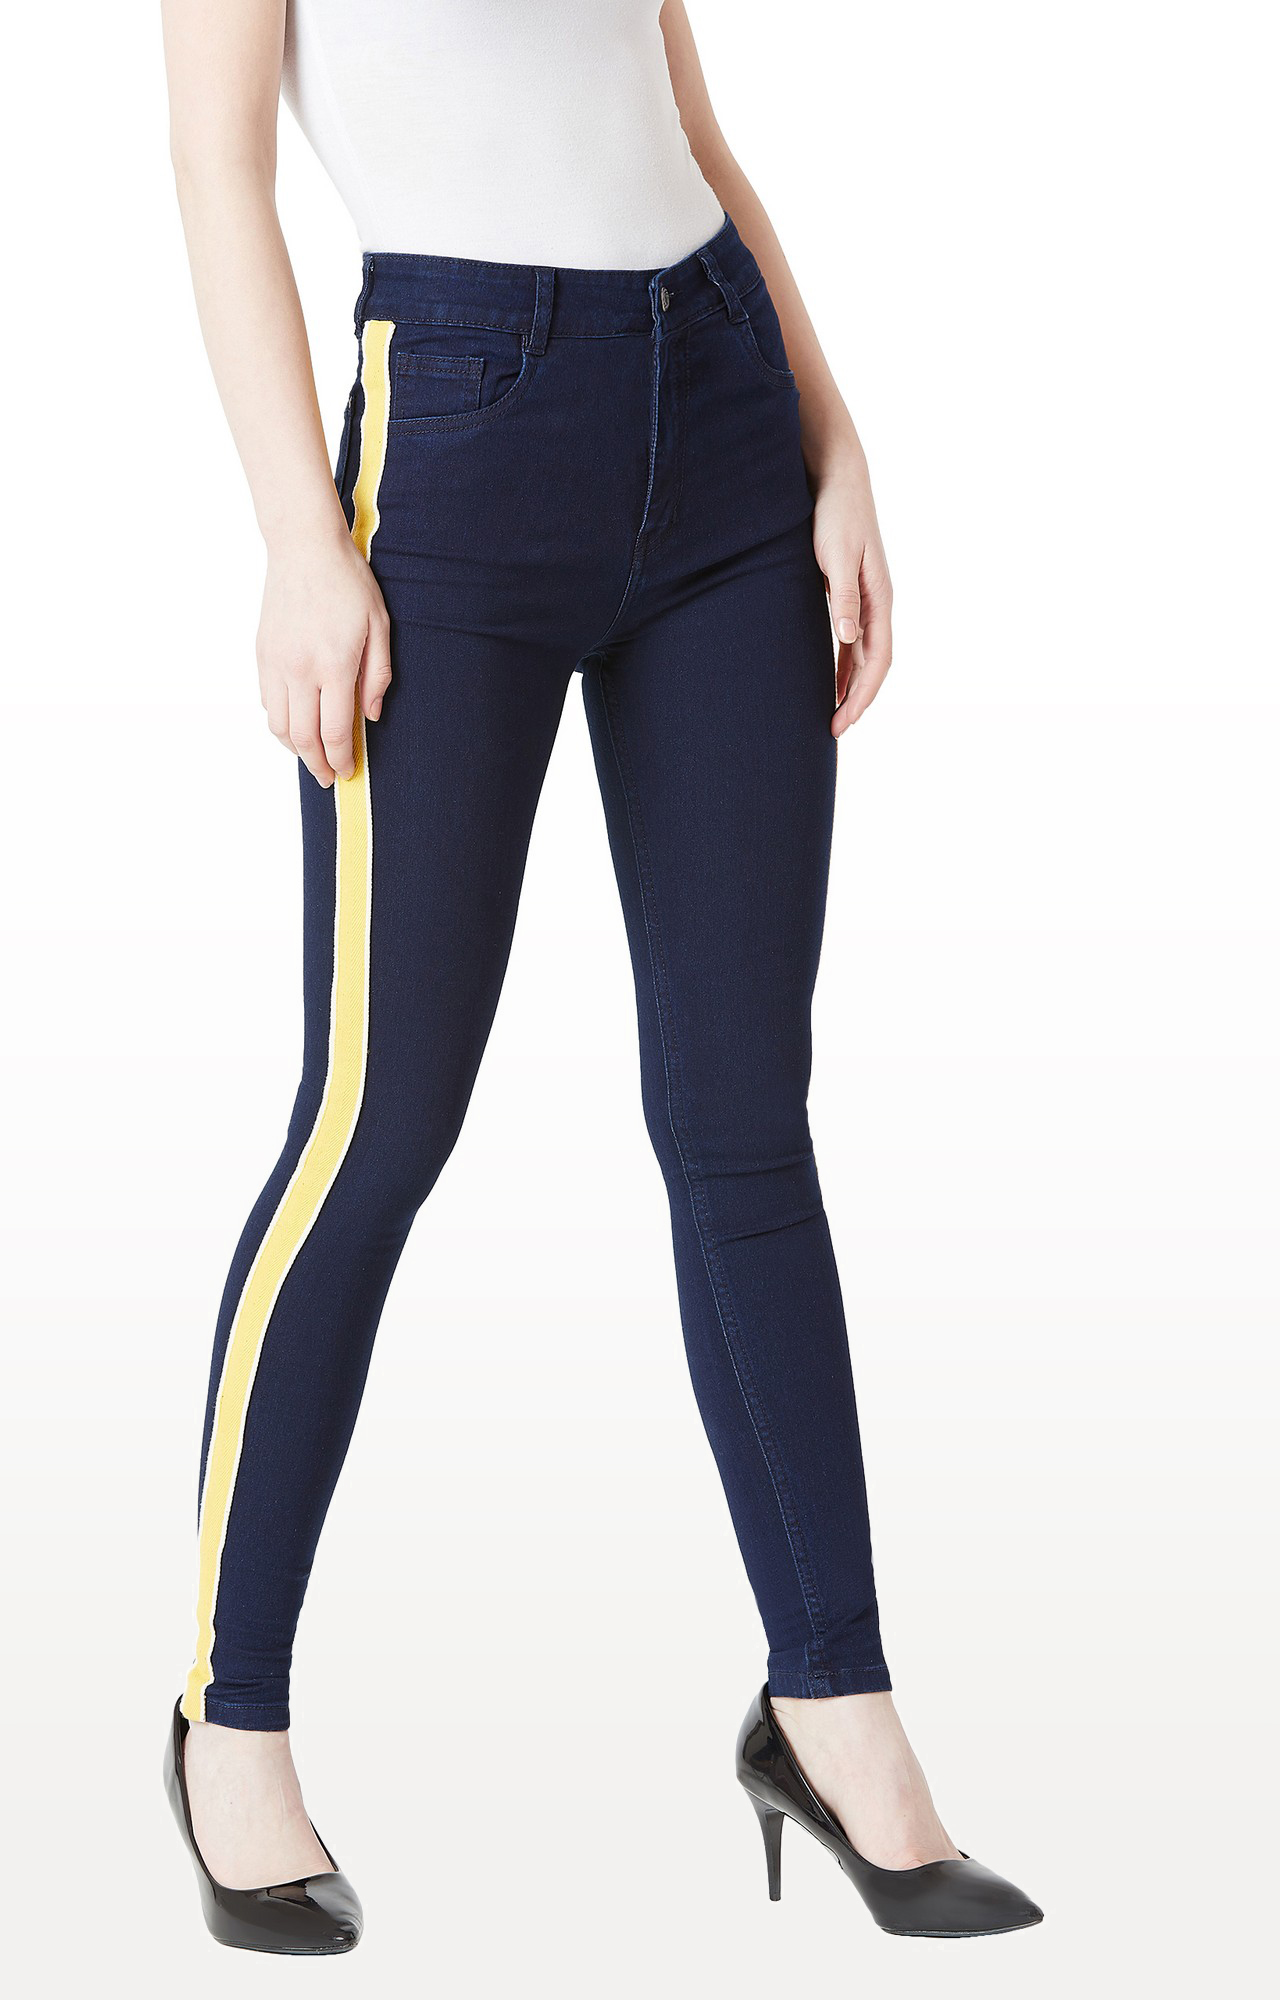 MISS CHASE   Navy Solid Mid Rise Twill Tape Detailing Stretchable Jeans